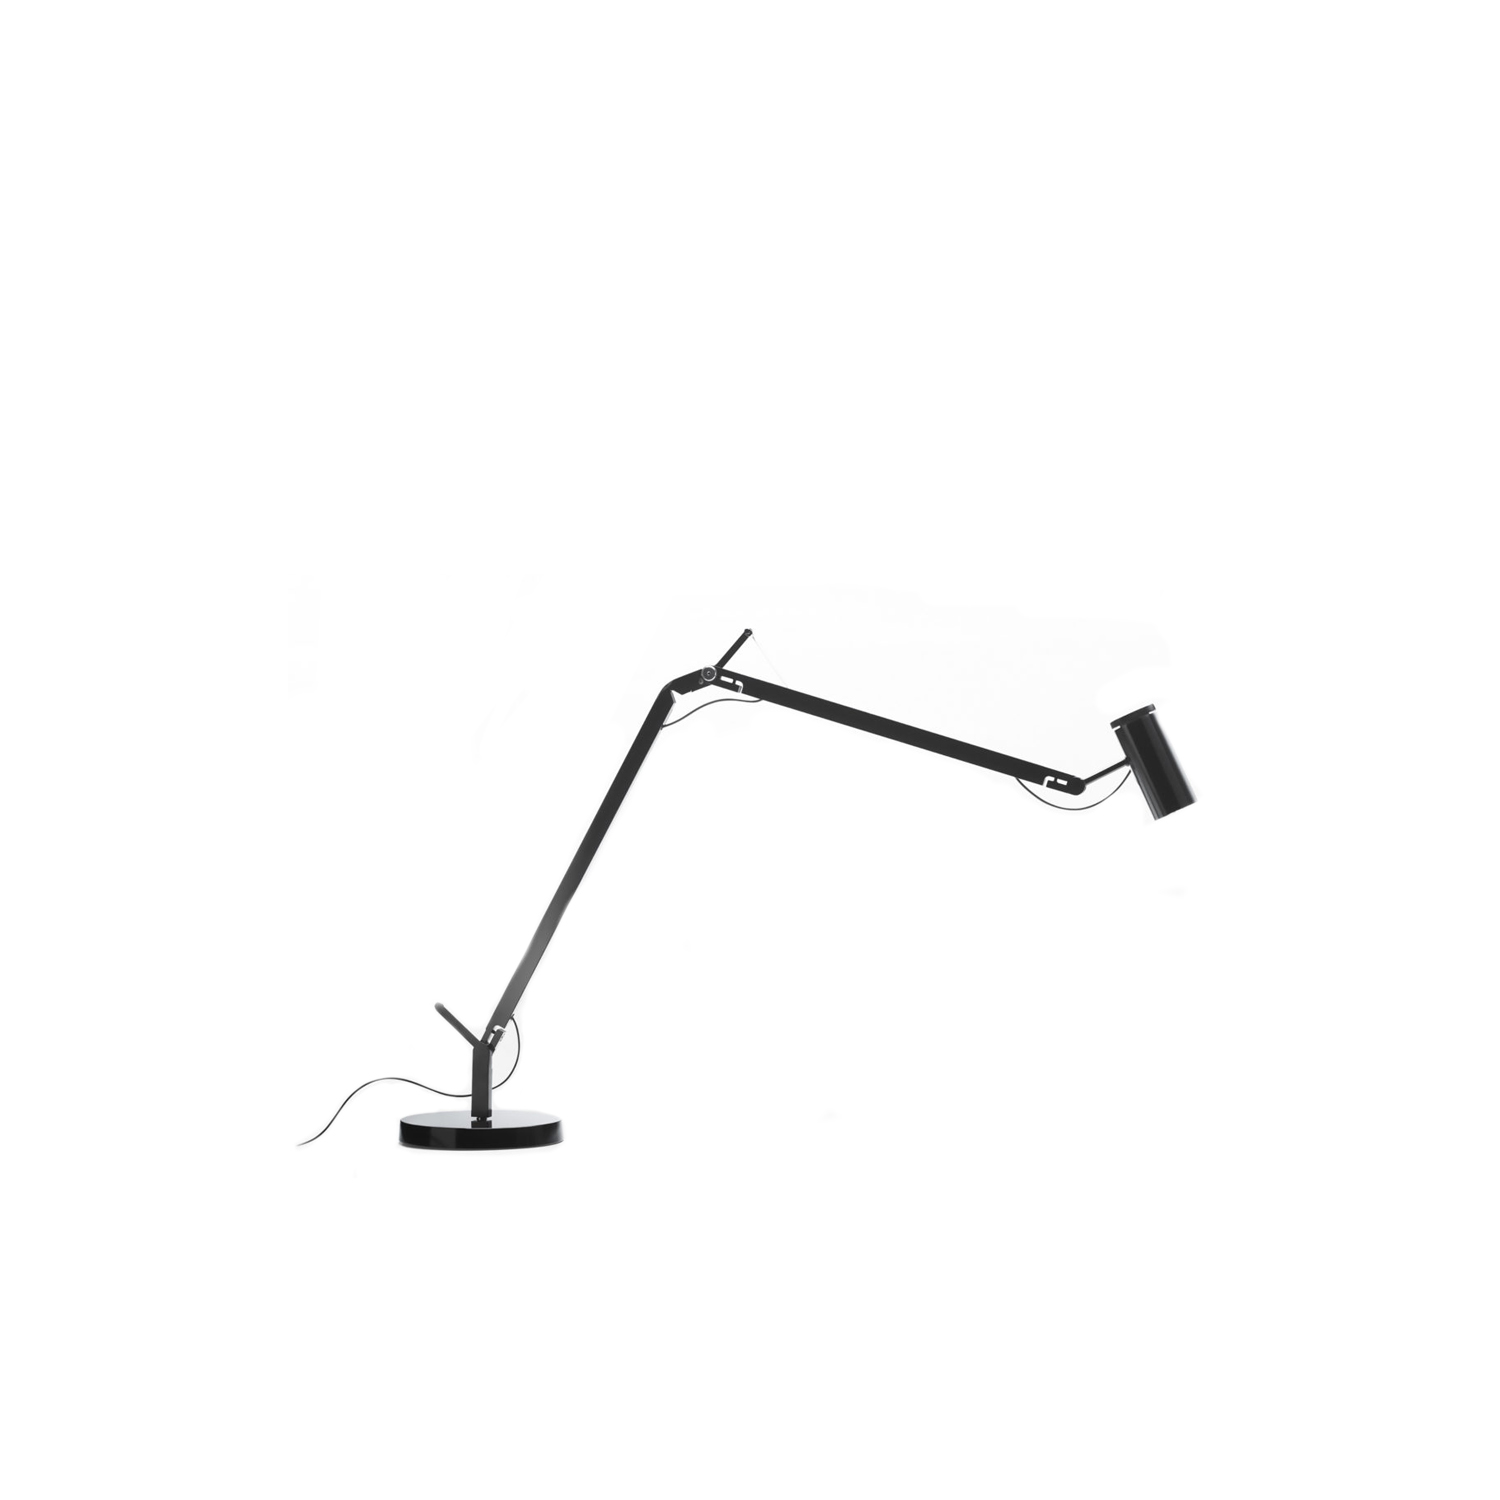 Polo Table Lamp - The fluidity of its movements and its total stability make this flexible fitting a light source which can be moved anywhere without cluttering your desk or taking up too much valuable space. Its integrated LED technology allows one to direct the beam with the utmost precision, for a light that is both focused and warm, yet highly useful.  The Polo comes with a diffuser made from injected aluminium, arms and built-in swivel joints CNC milled from an aluminium block, and a rotary switch located in the upper part of the head stock.  Available in black, the Polo can be equipped with a range of accessories, including a table base, a wall bracket, and a standing version | Matter of Stuff